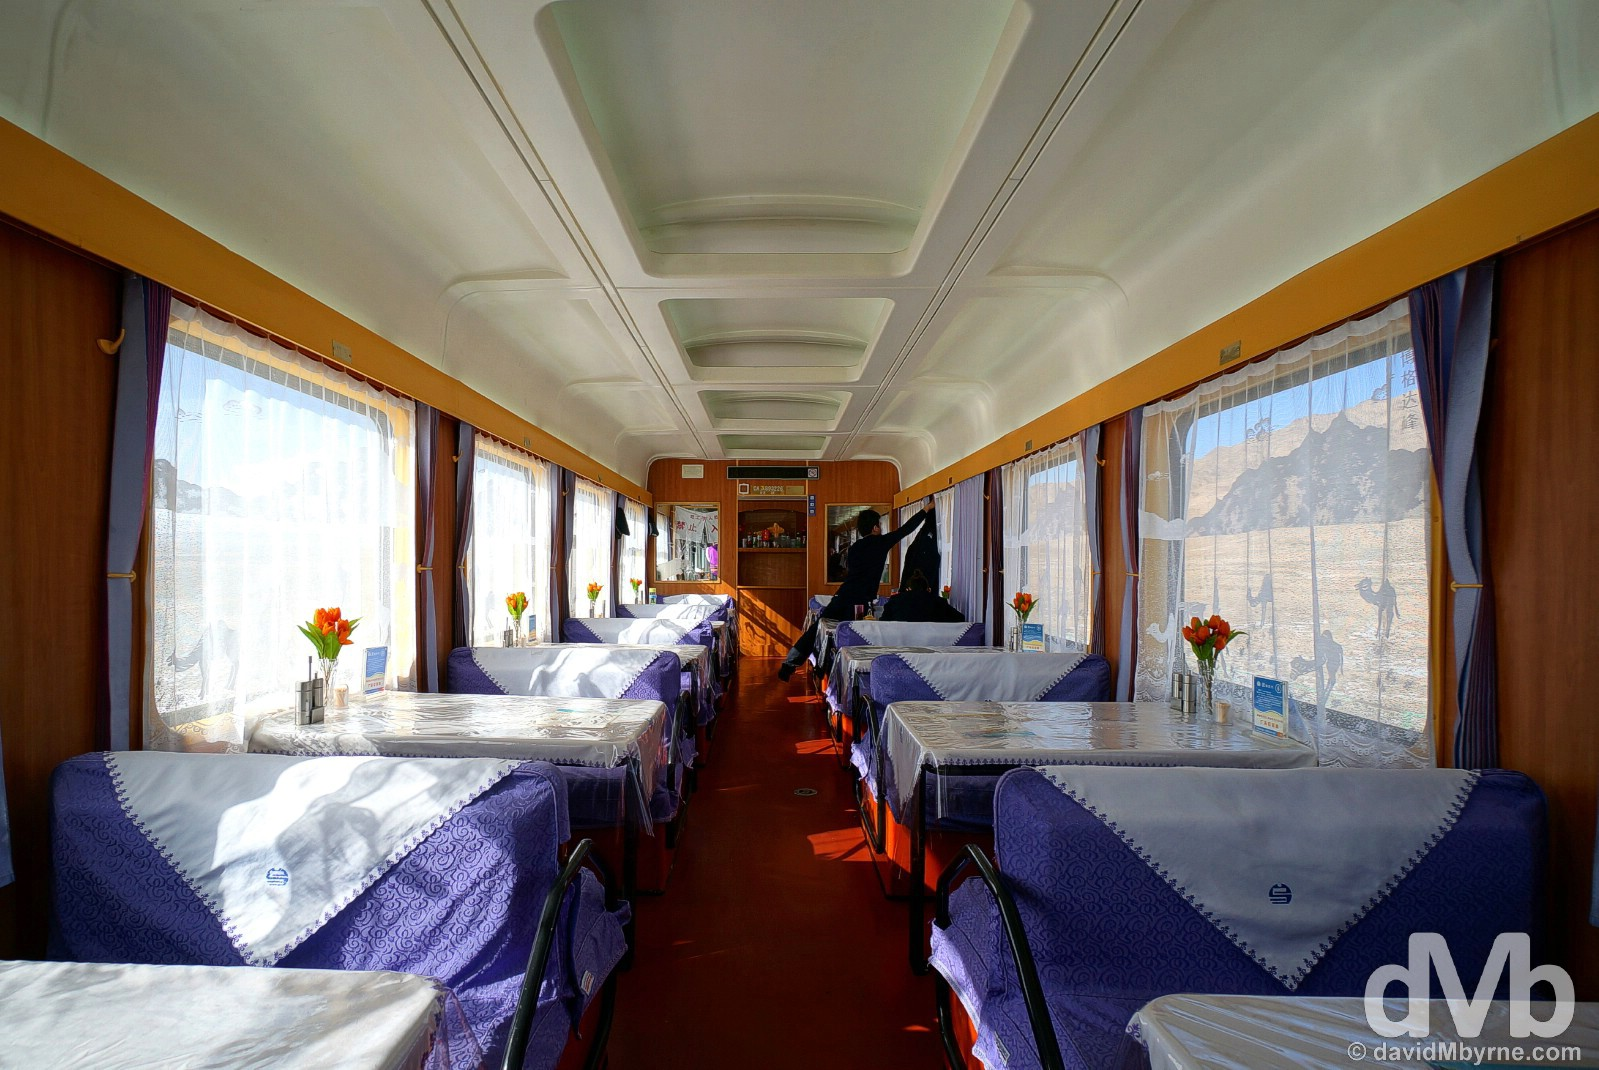 The dining car of the daily T177 Beijing to Urumqi train in China. February 9, 2015.